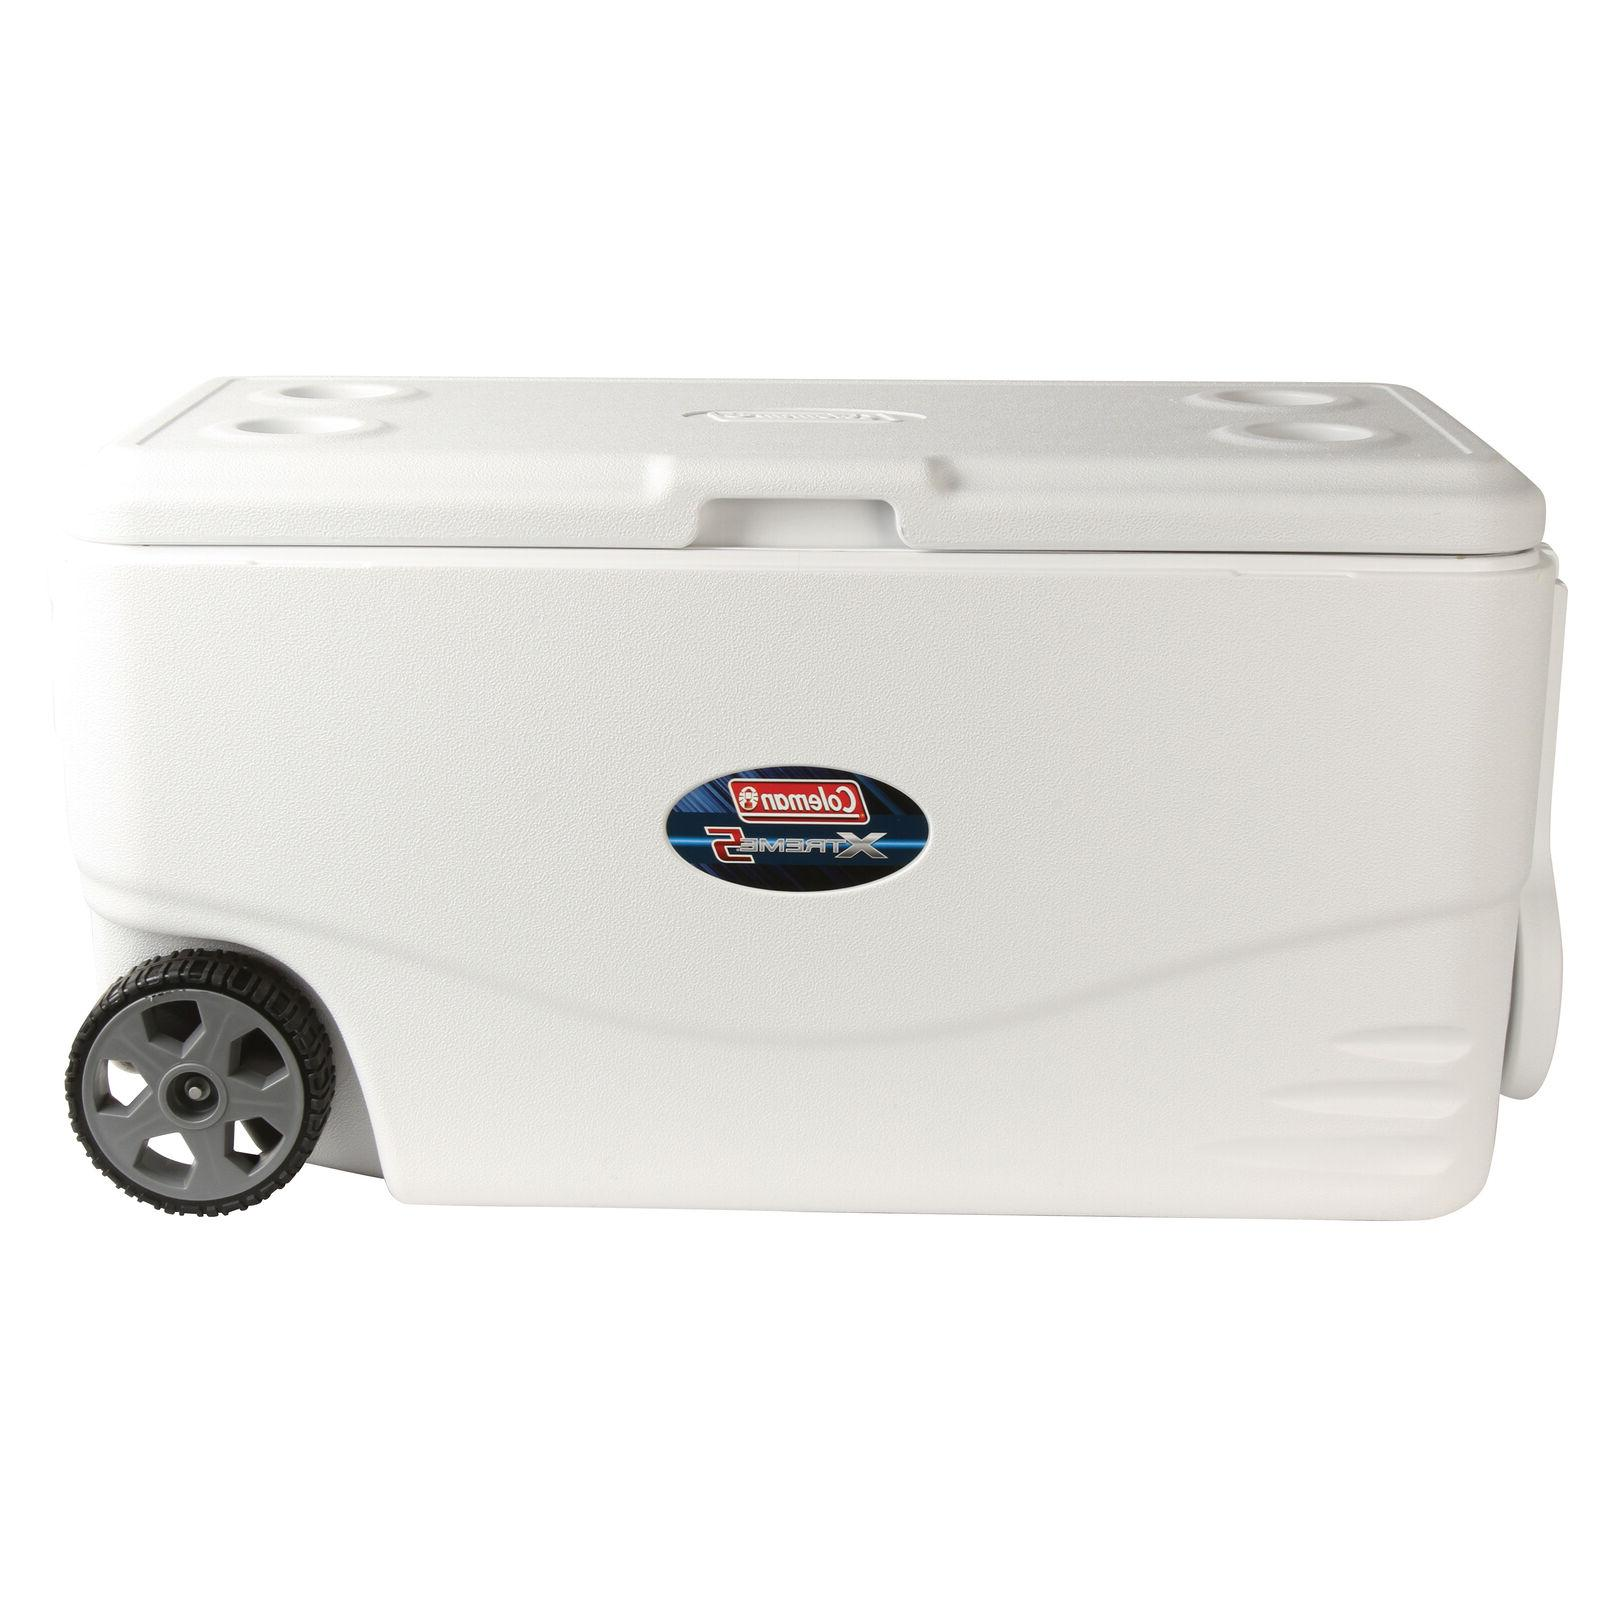 New Quart Extreme Heavy Duty Camping Cooler with